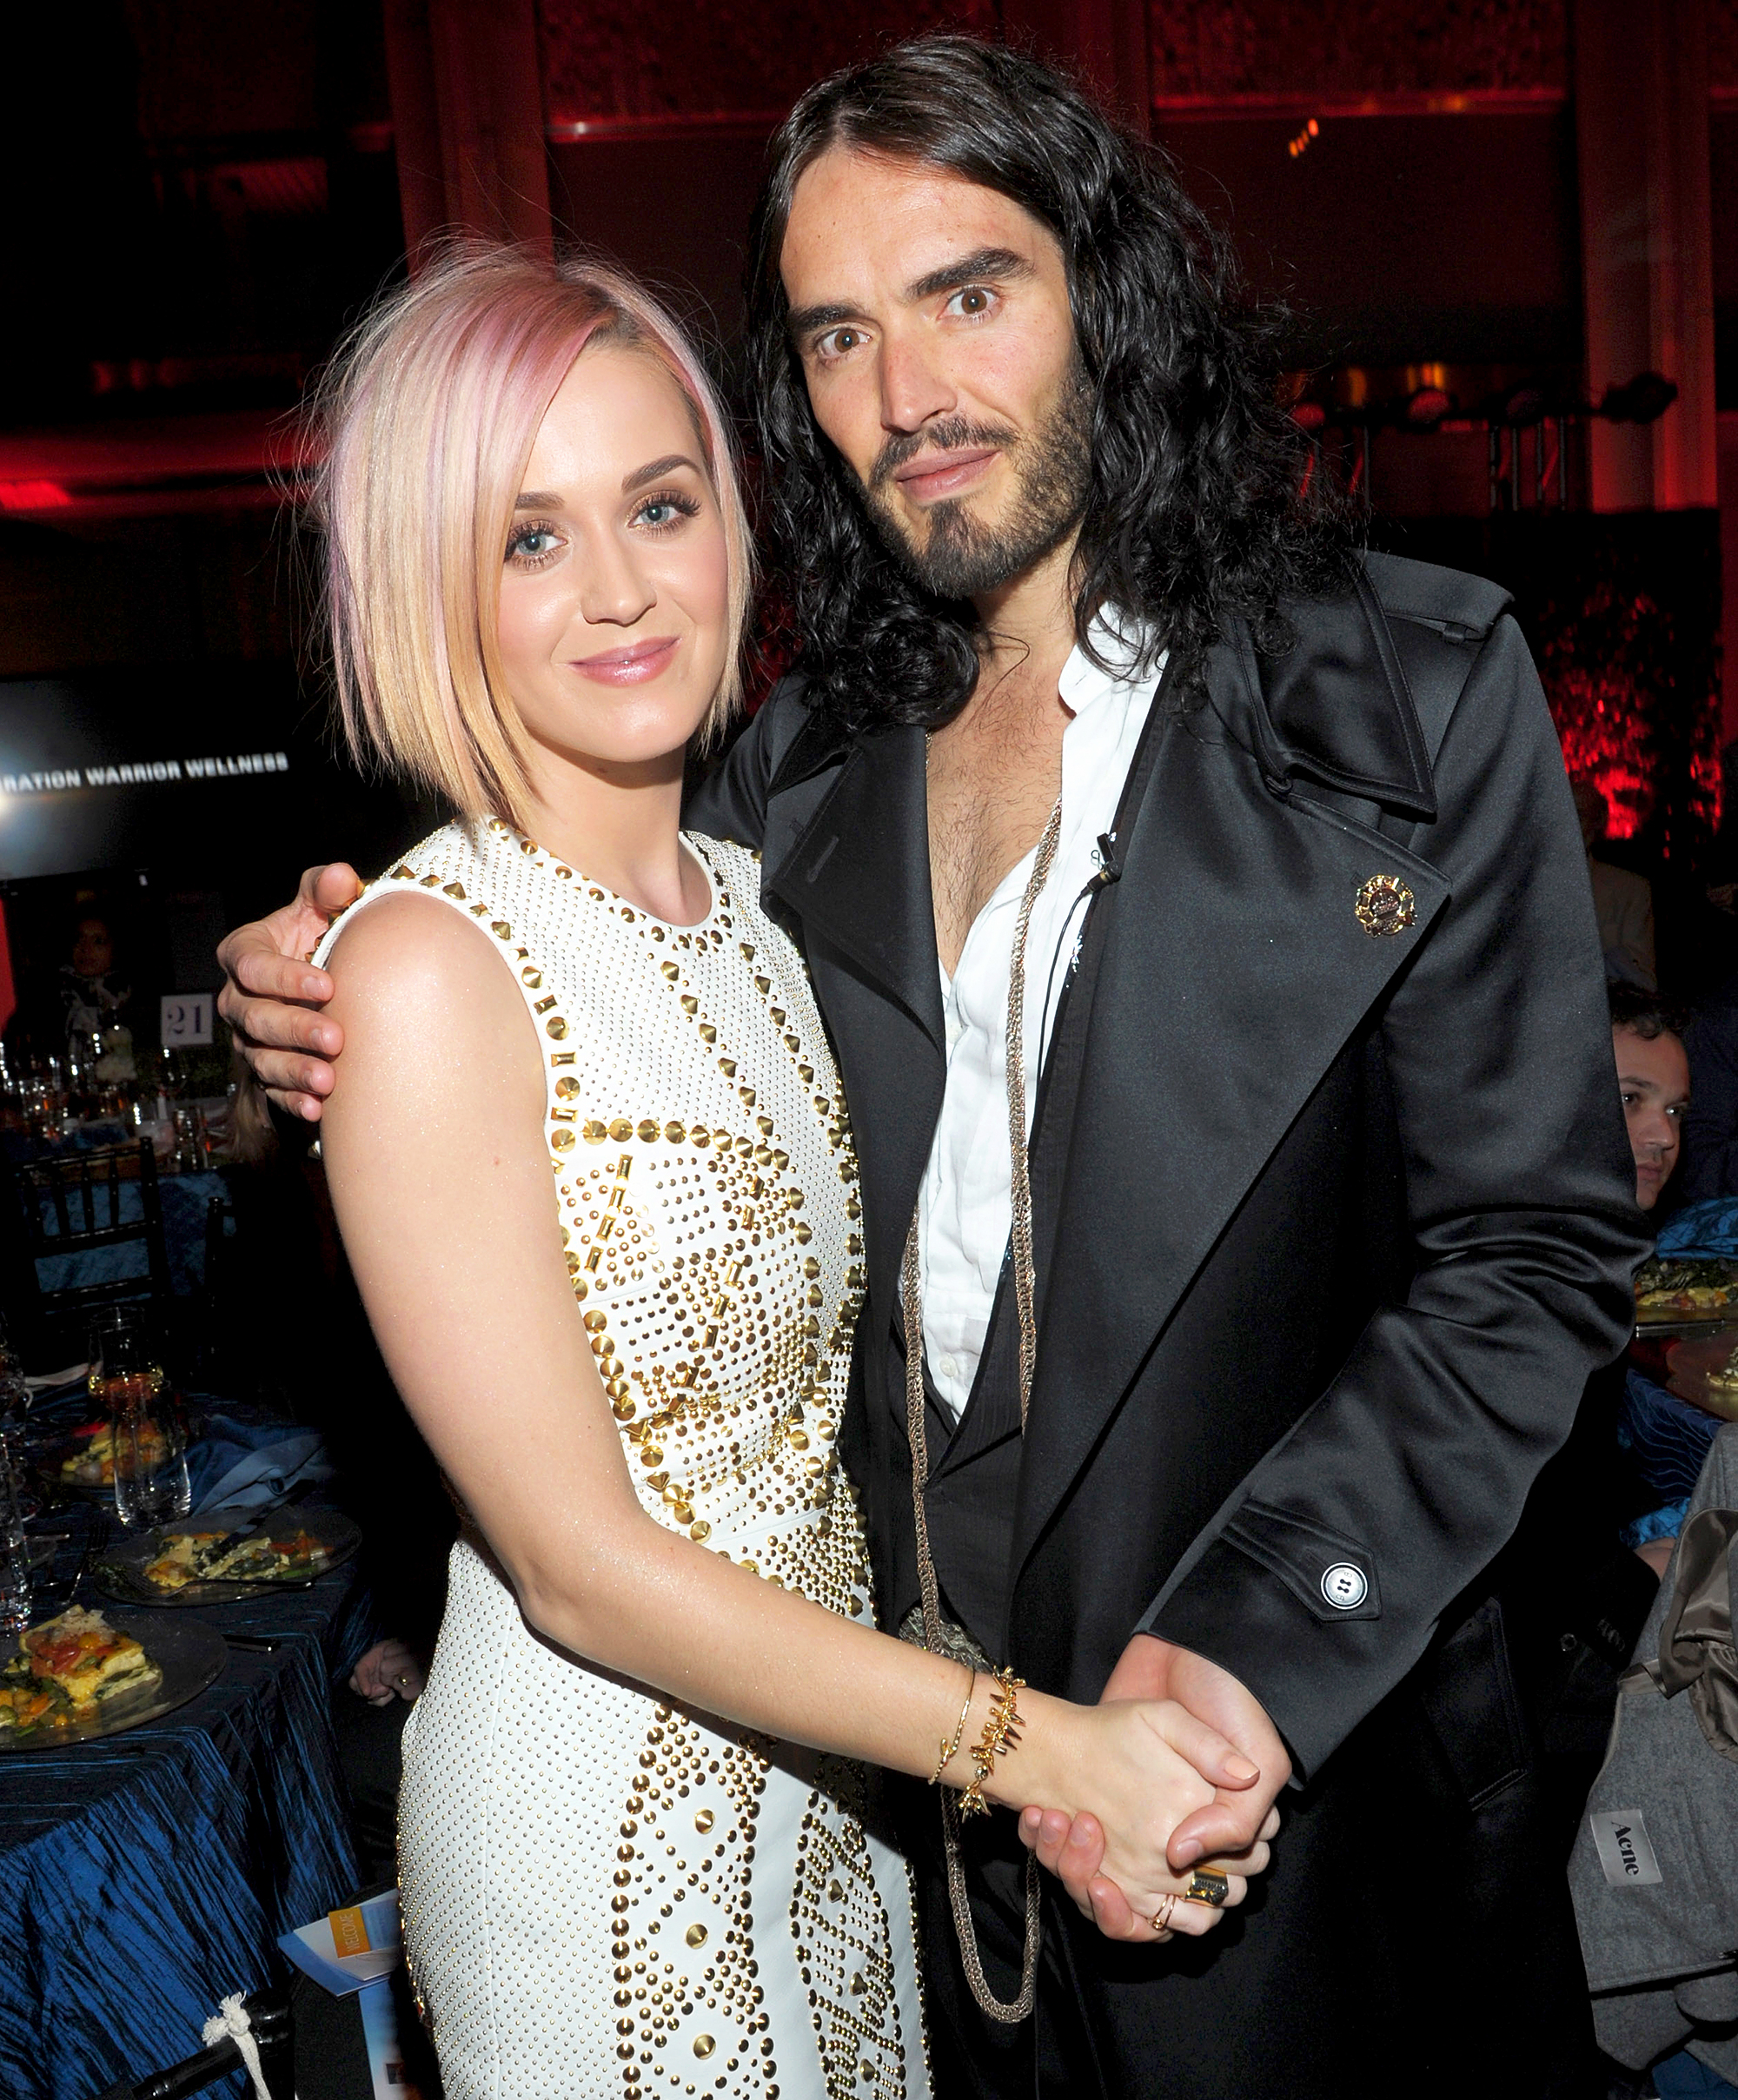 Russell Brand and Katy Perry are going to get married naked 03.02.2010 3